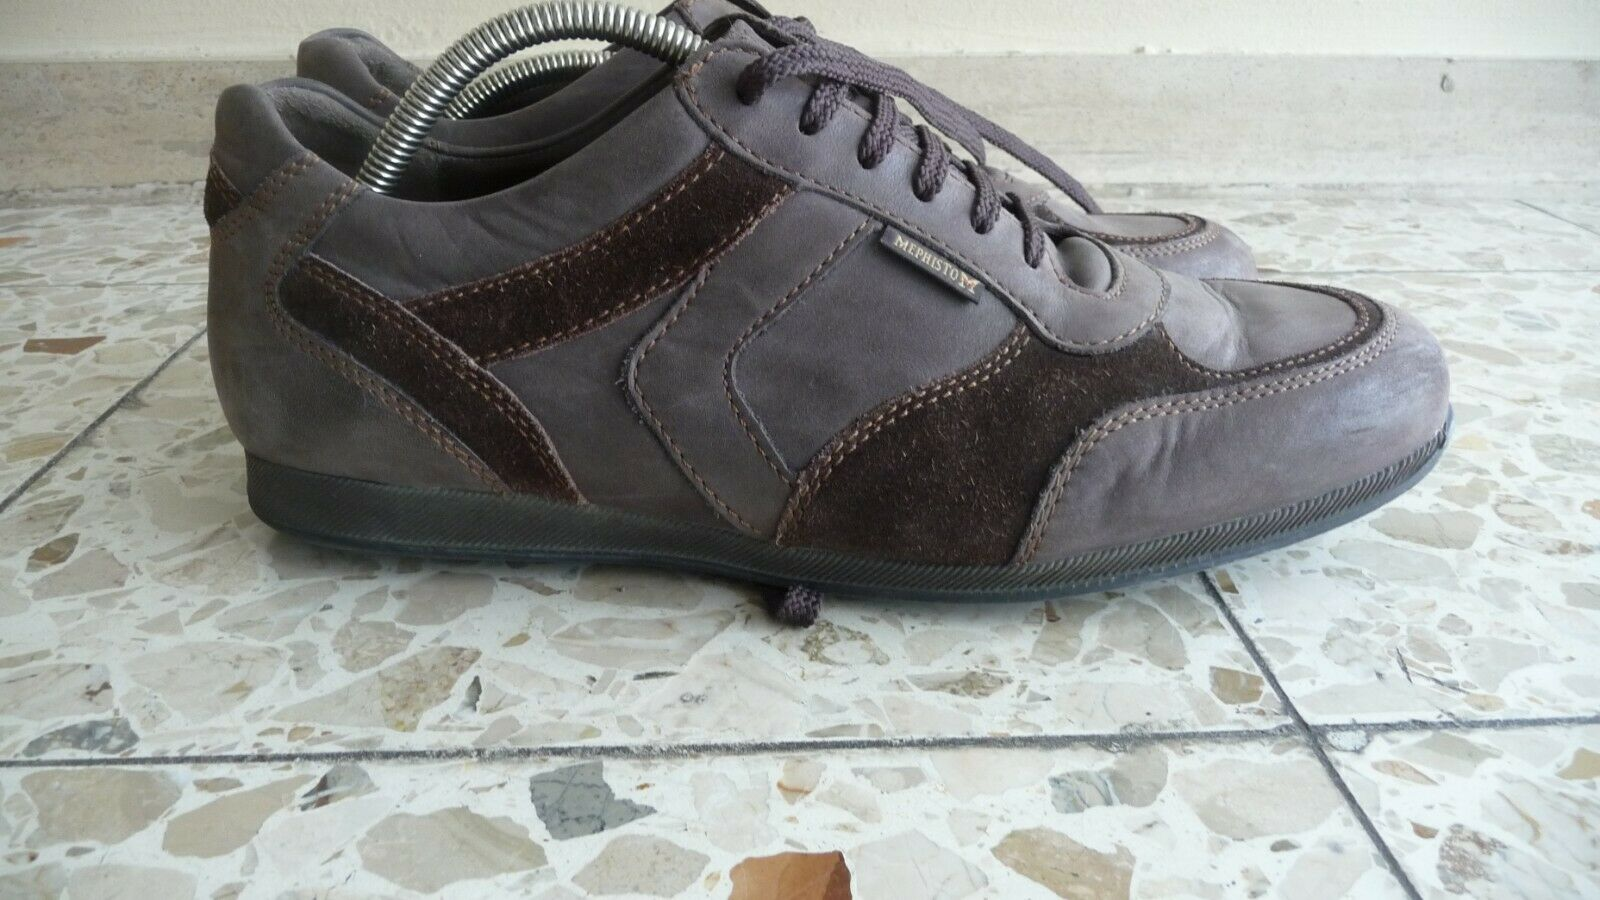 Mephisto Mens Sneakers Shoes Size UK: 9 US: 9,5 LIKE NEW